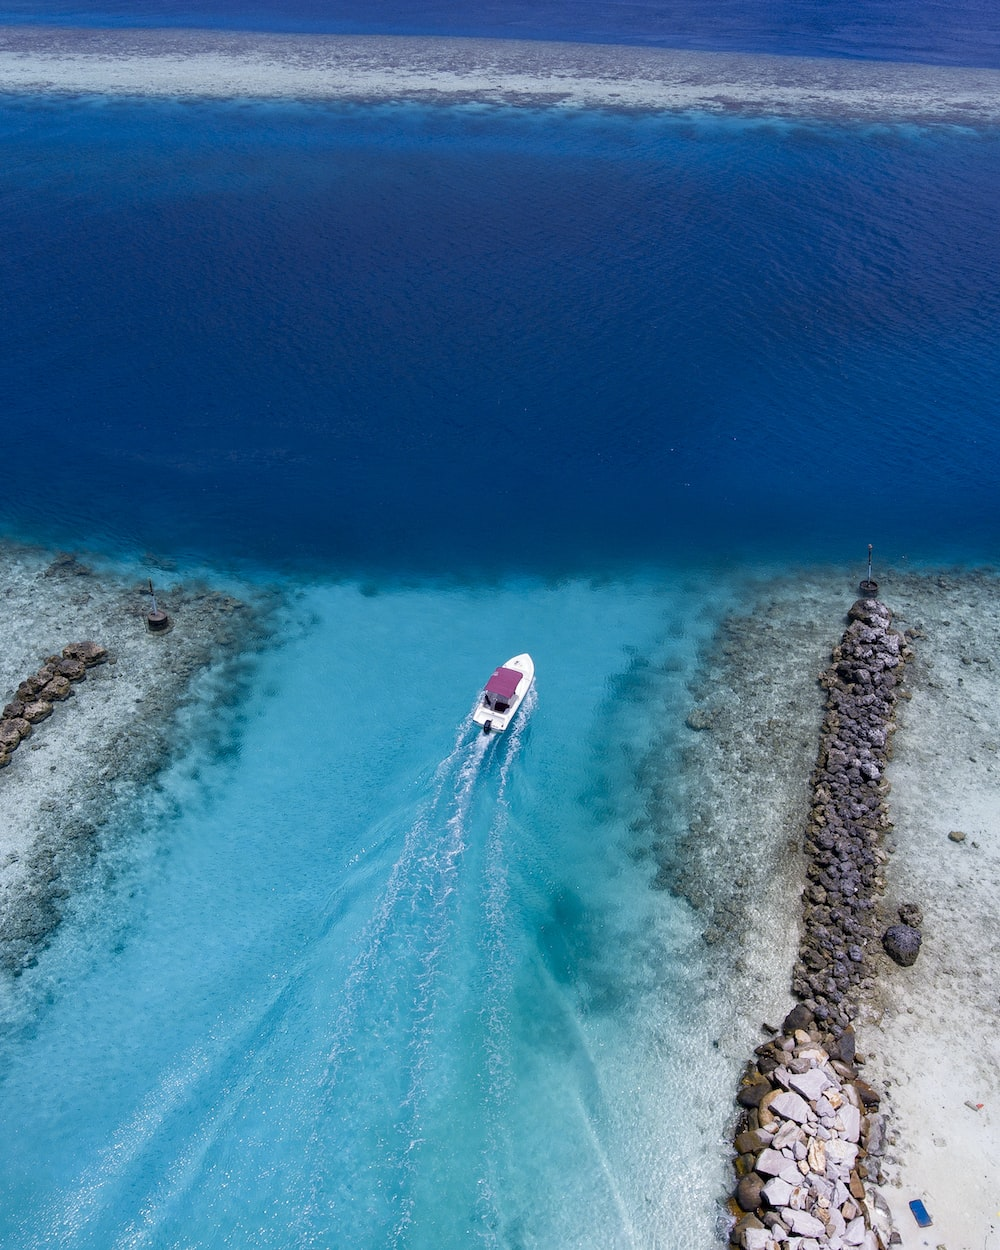 birds eye view of white boat on body of water